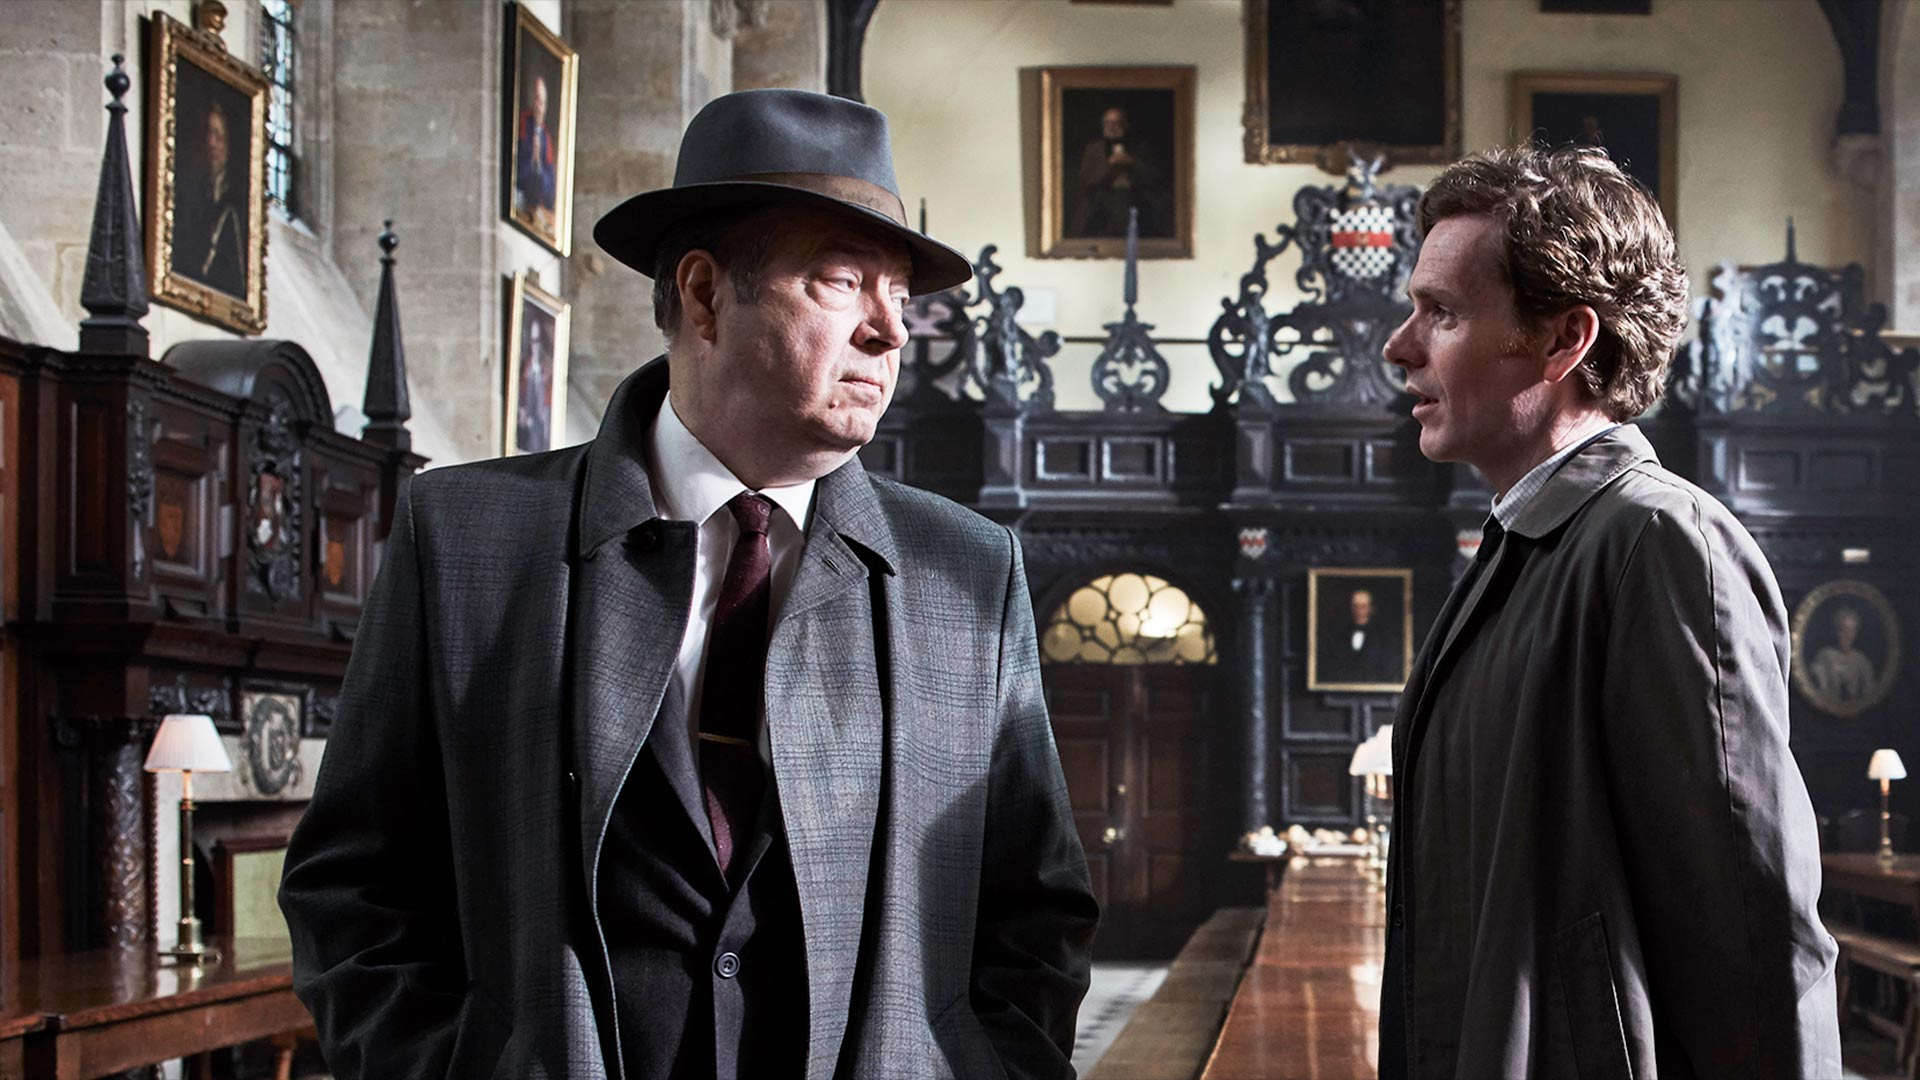 Shown from left to right: Roger Allam as Detective Chief Inspector Fred Thursday and Shaun Evans as Detective Sergeant Endeavour Morse.